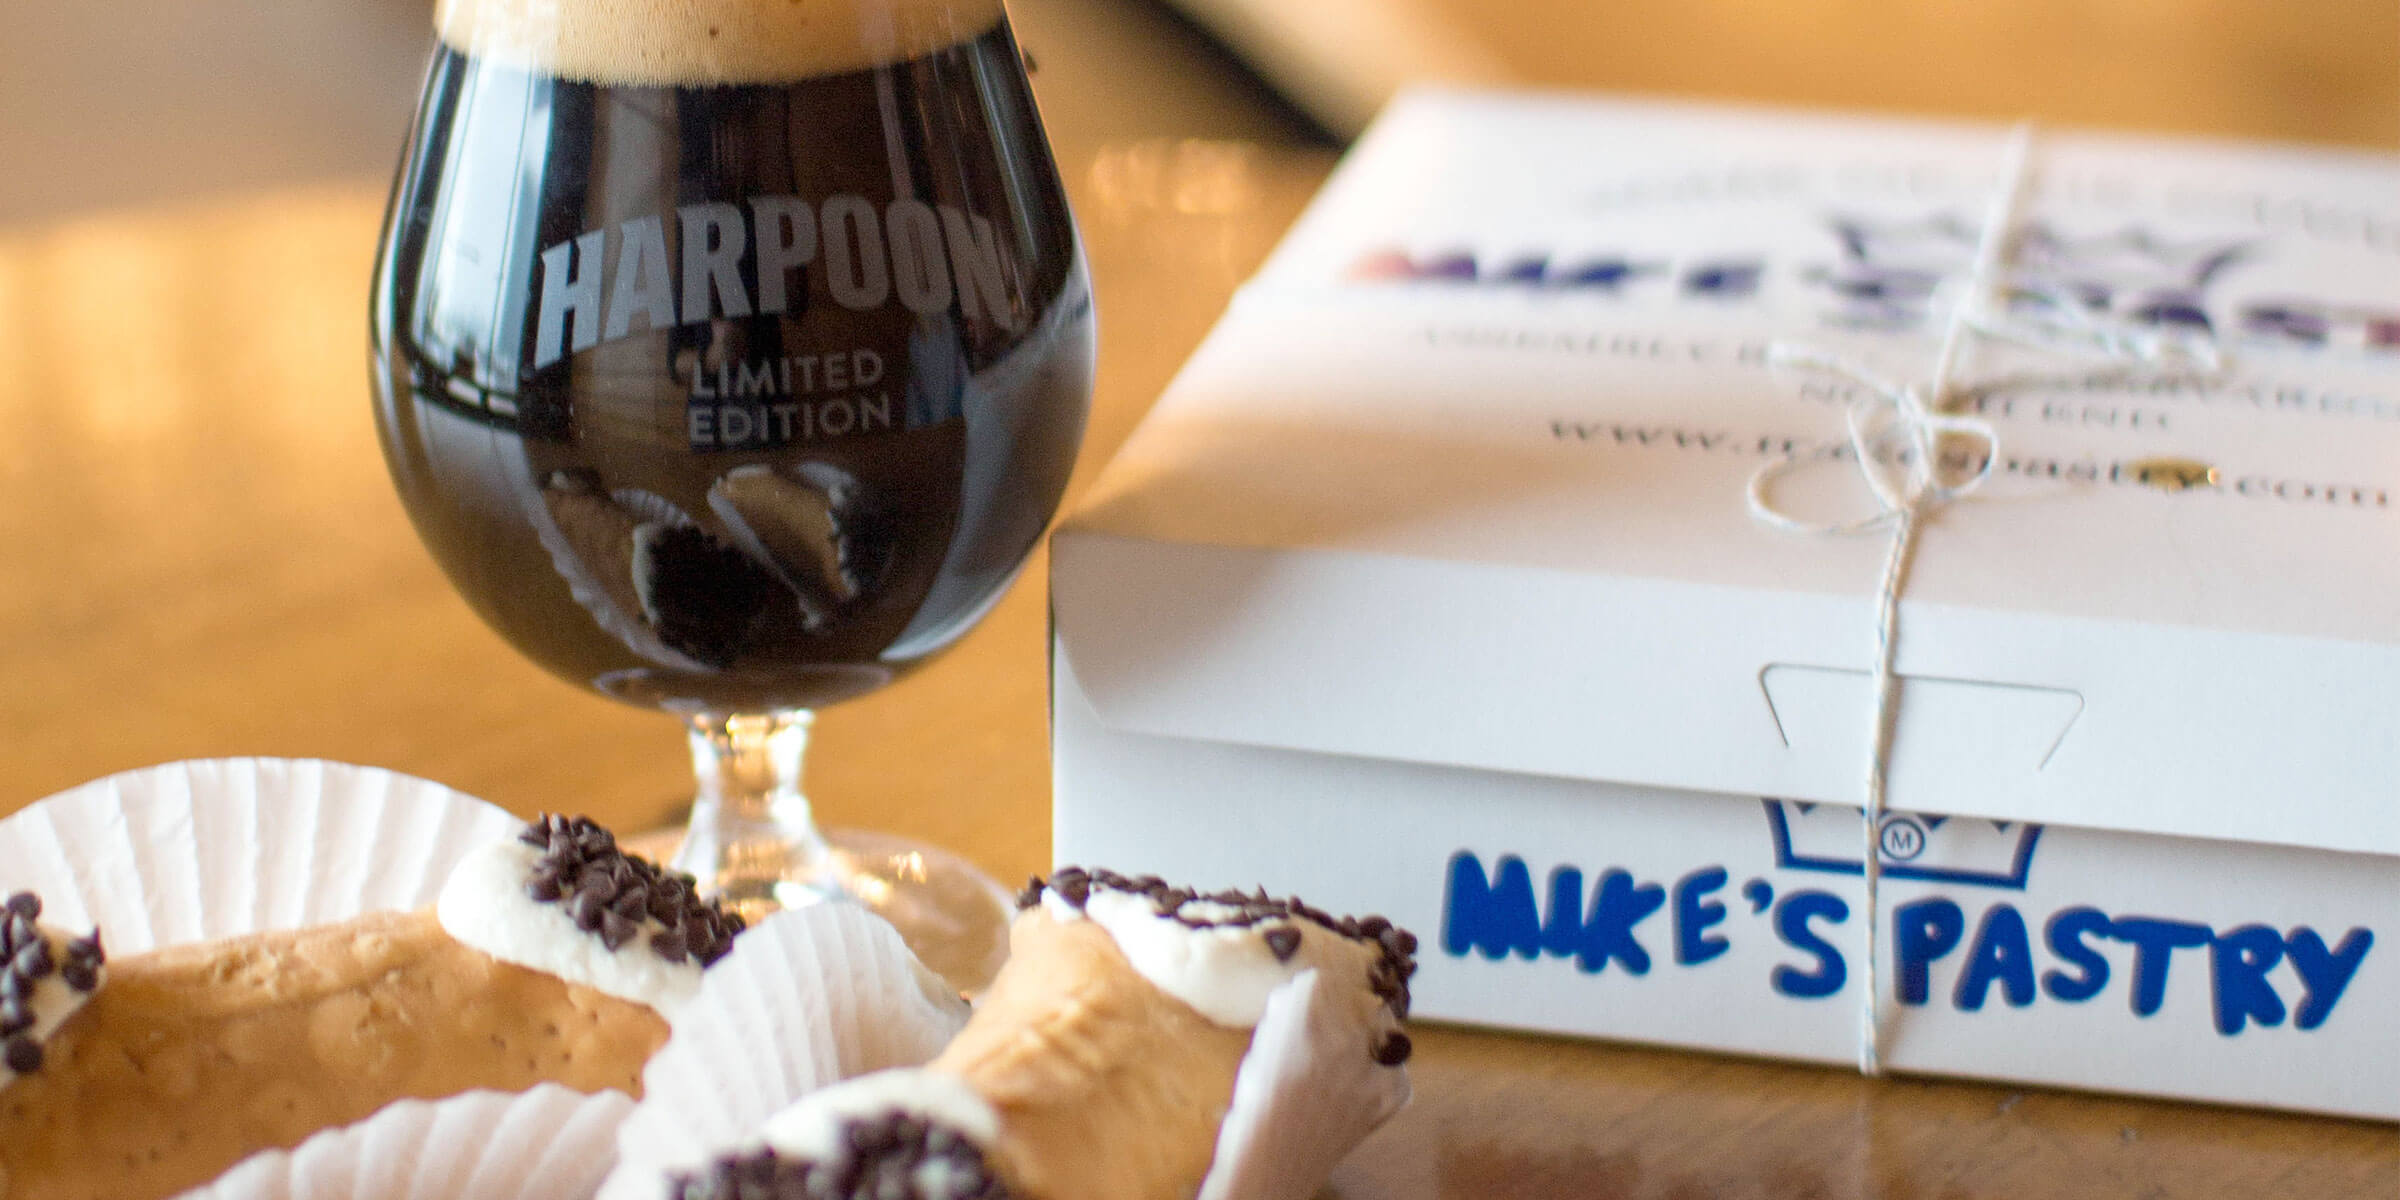 Harpoon Brewery is partnering with Mike's Pastry, the world famous pastry shop, to brew up a limited, delicious combo: Harpoon Mike's Pastry Cannoli Stout.